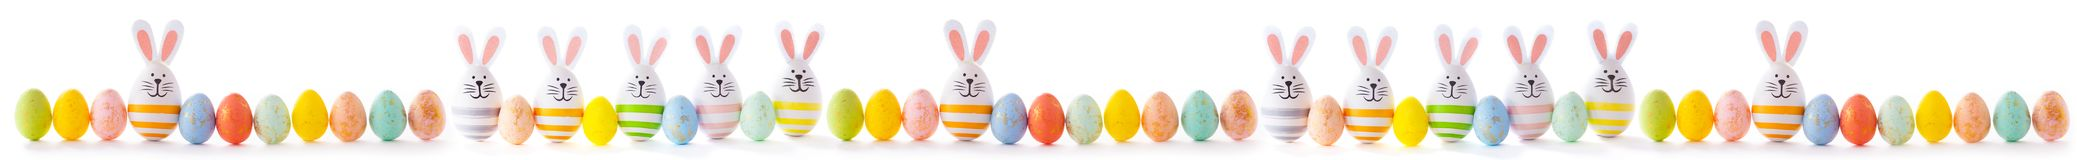 Easter egg banner royalty free stock photo